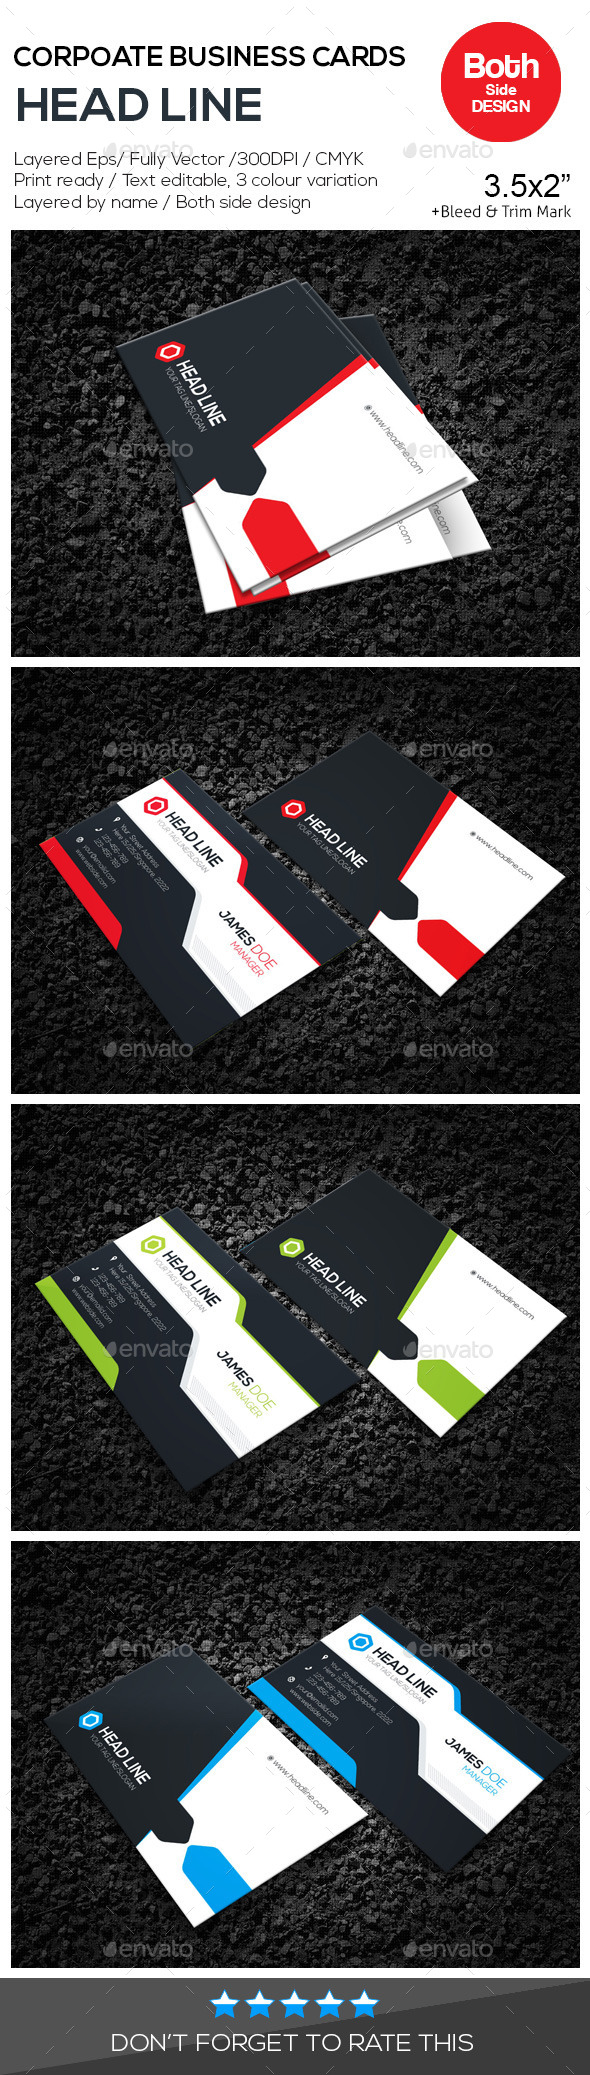 GraphicRiver HEAD LINE Corporate Business Cards 10559640